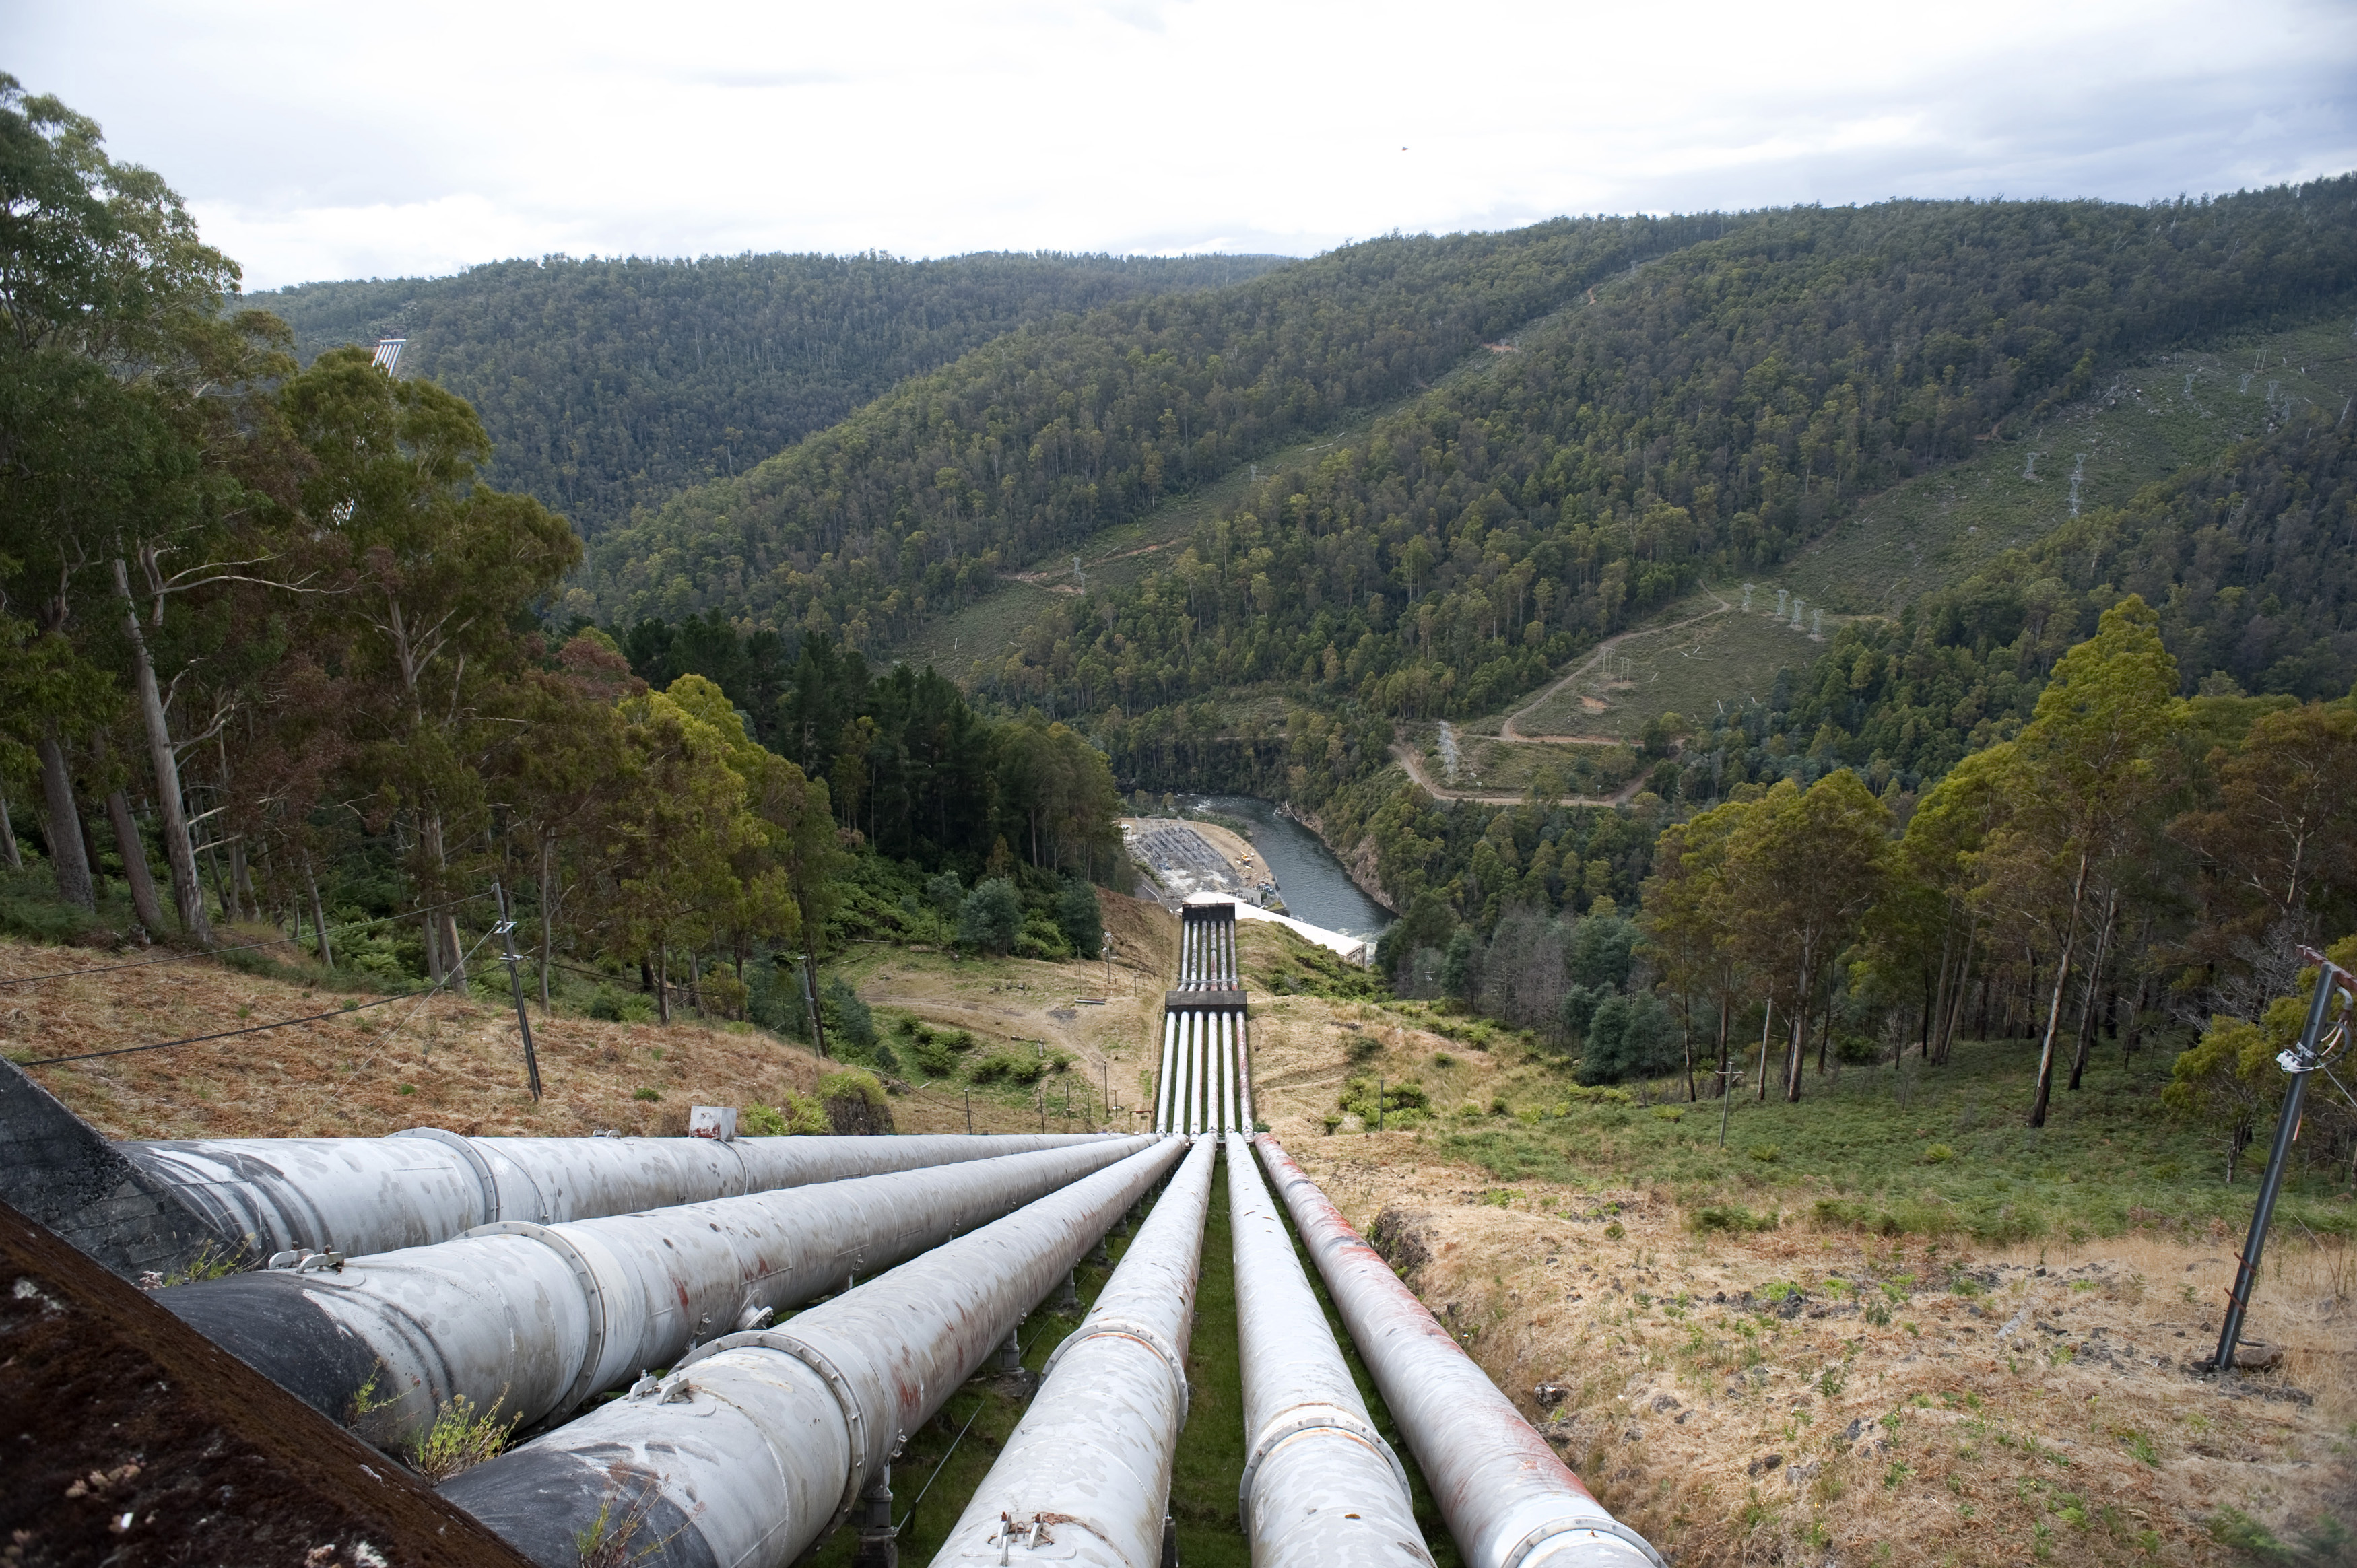 Water pipes at a hydroelectric scheme transporting water to the turbines to generate electricity, renewable or alternative energy concept